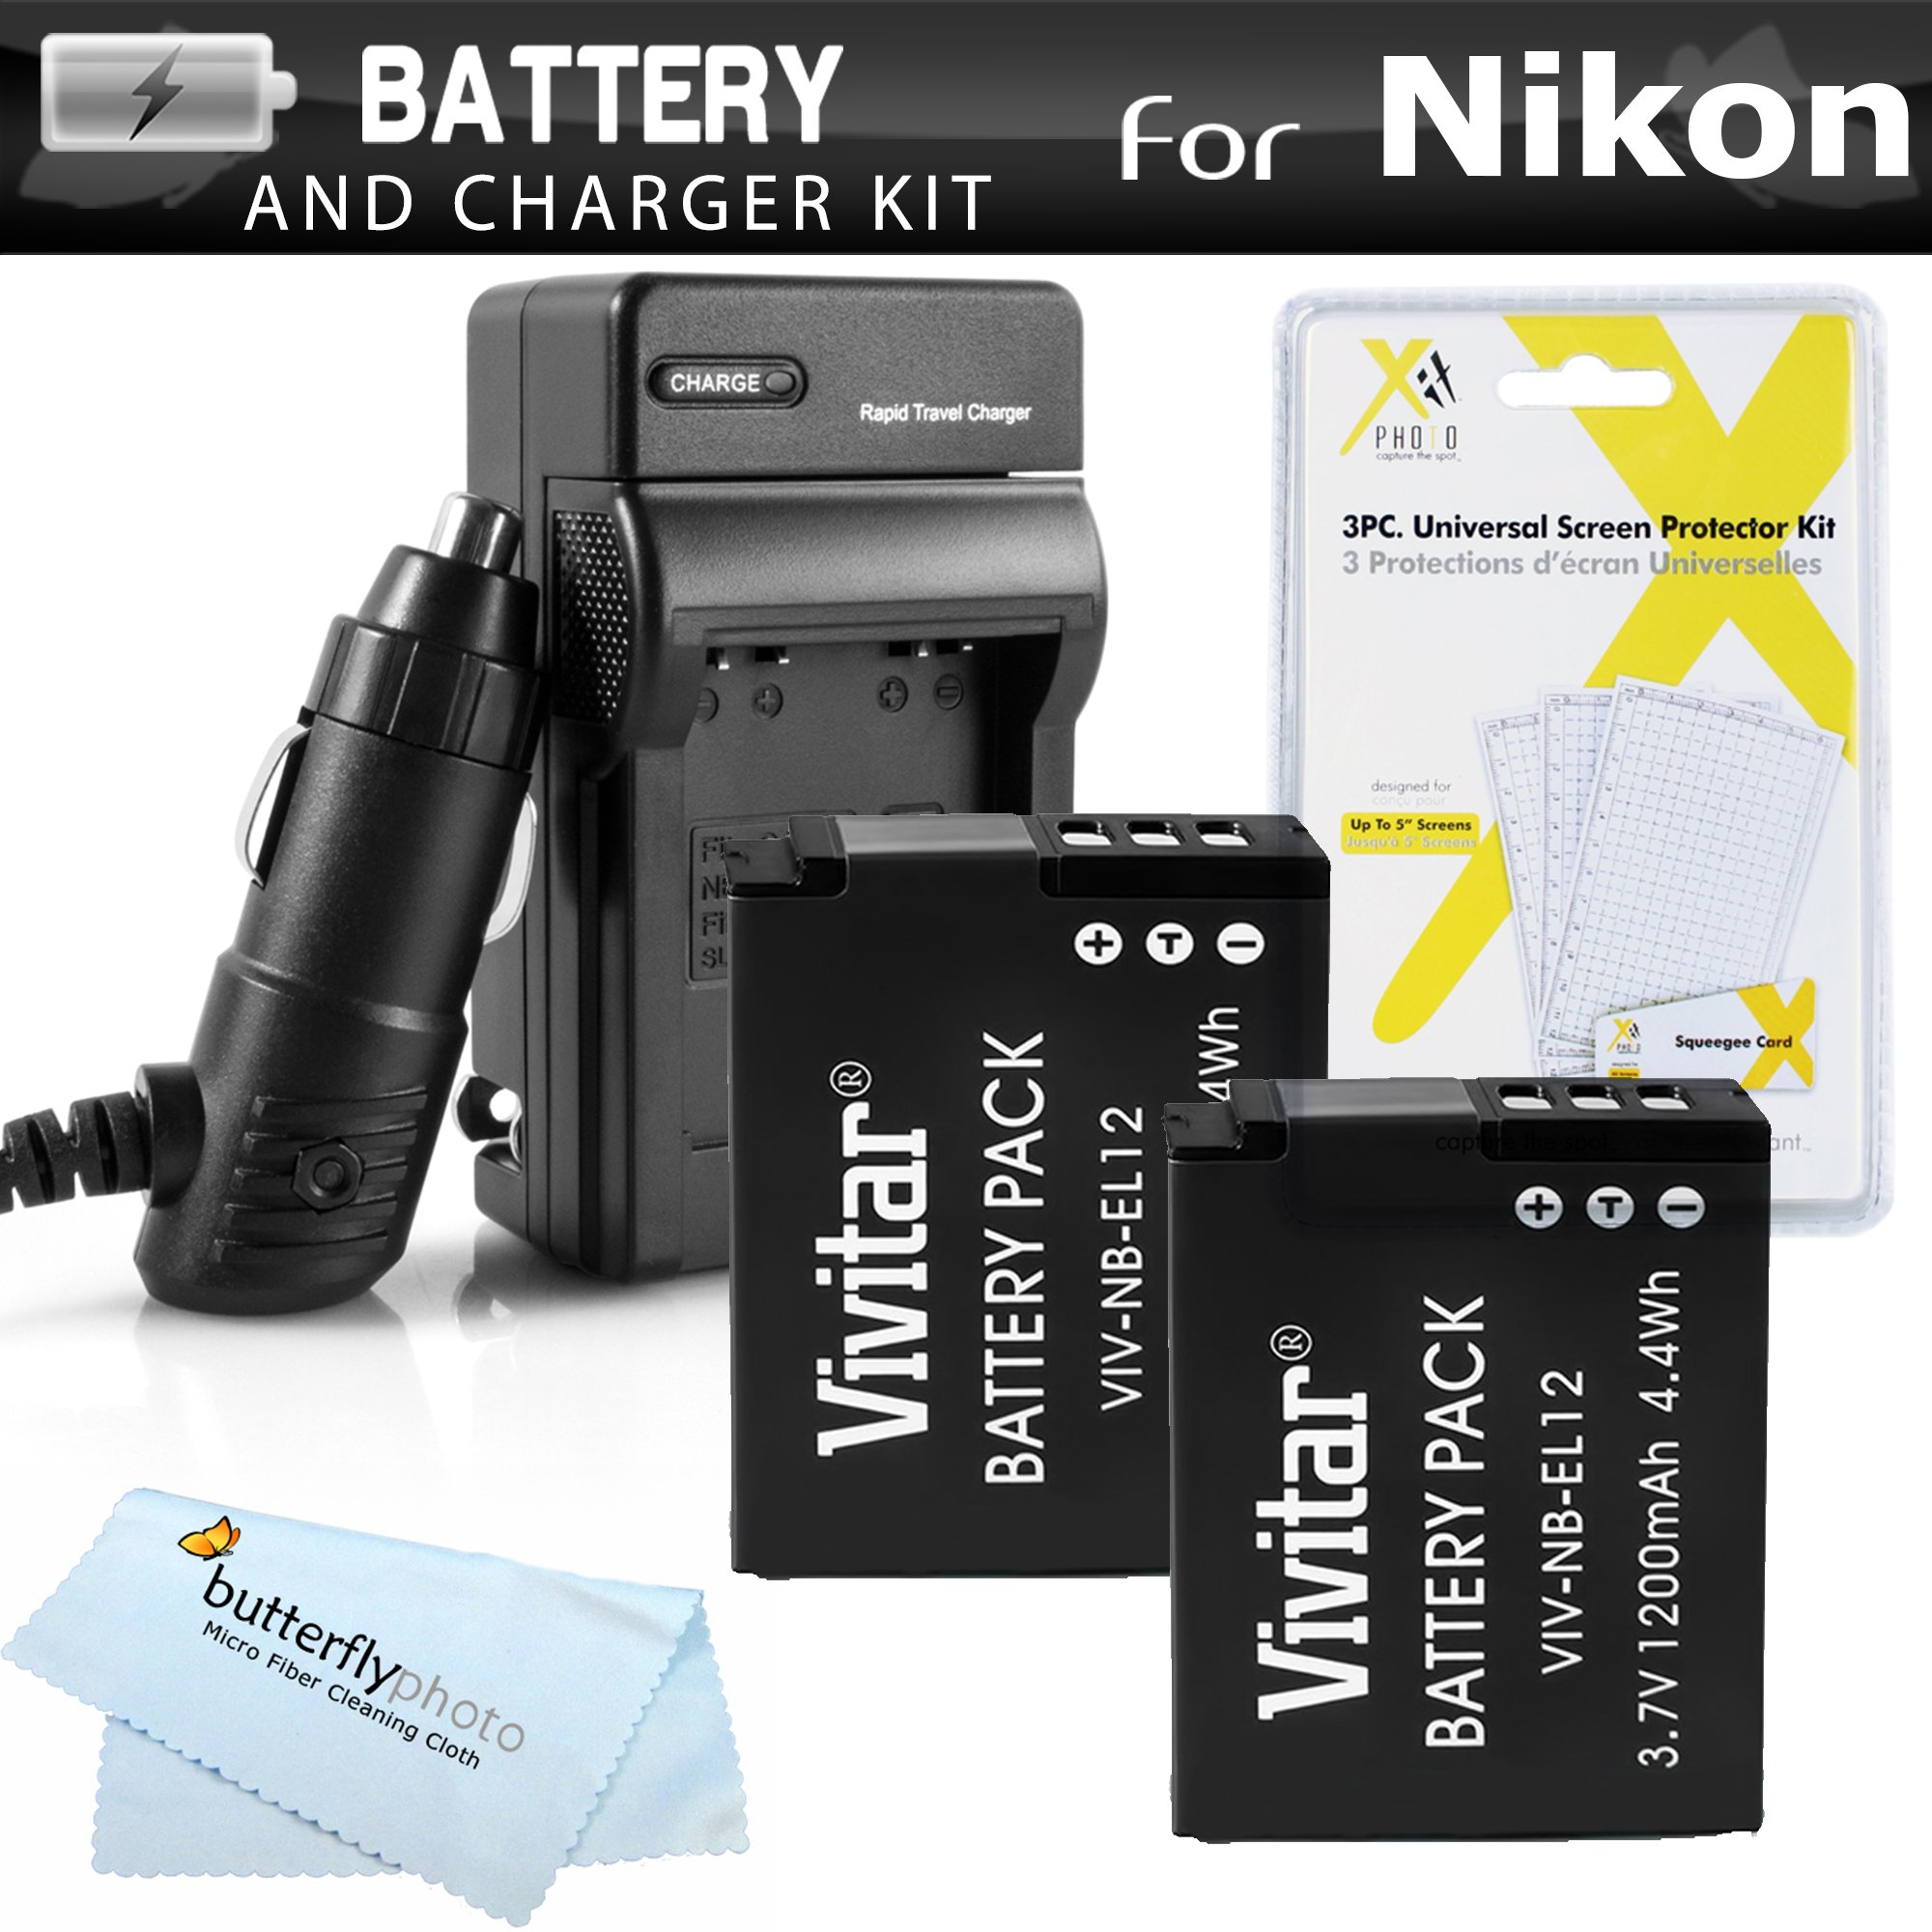 2 Pack Battery And Charger Kit For Nikon COOLPIX S9900, A900, W300, S9300 S6300, S9200, AW120, AW130, S9700, KeyMission 360, KeyMission 170 Camera Includes 2 Replacement EN-EL12 Batteries + Charger +